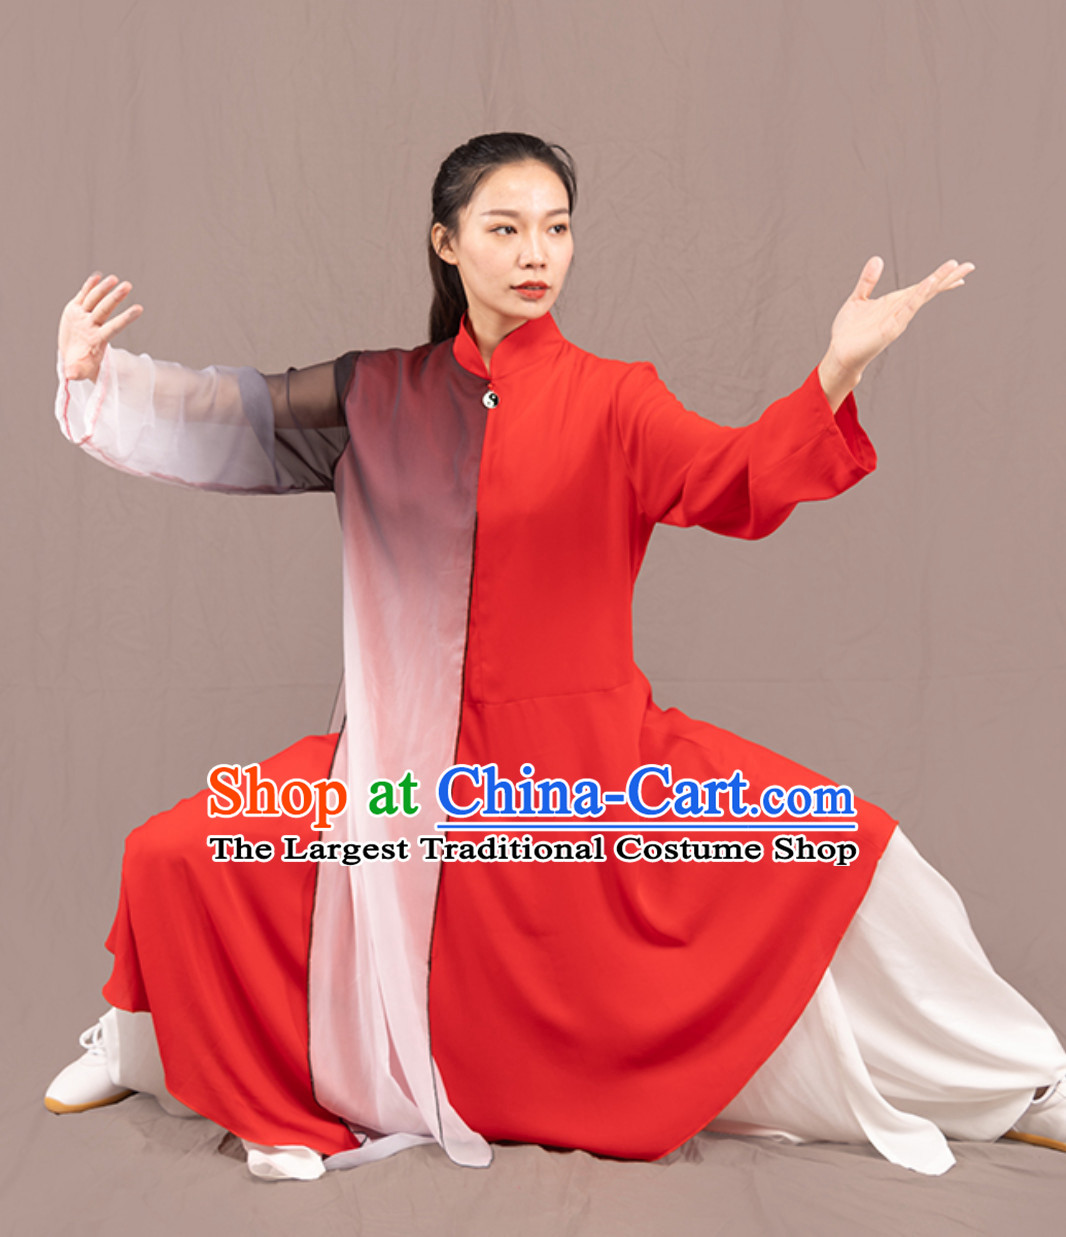 Top Chinese Traditional Competition Championship Tai Chi Taiji Kung Fu Uniforms Master Dresses Complete Set